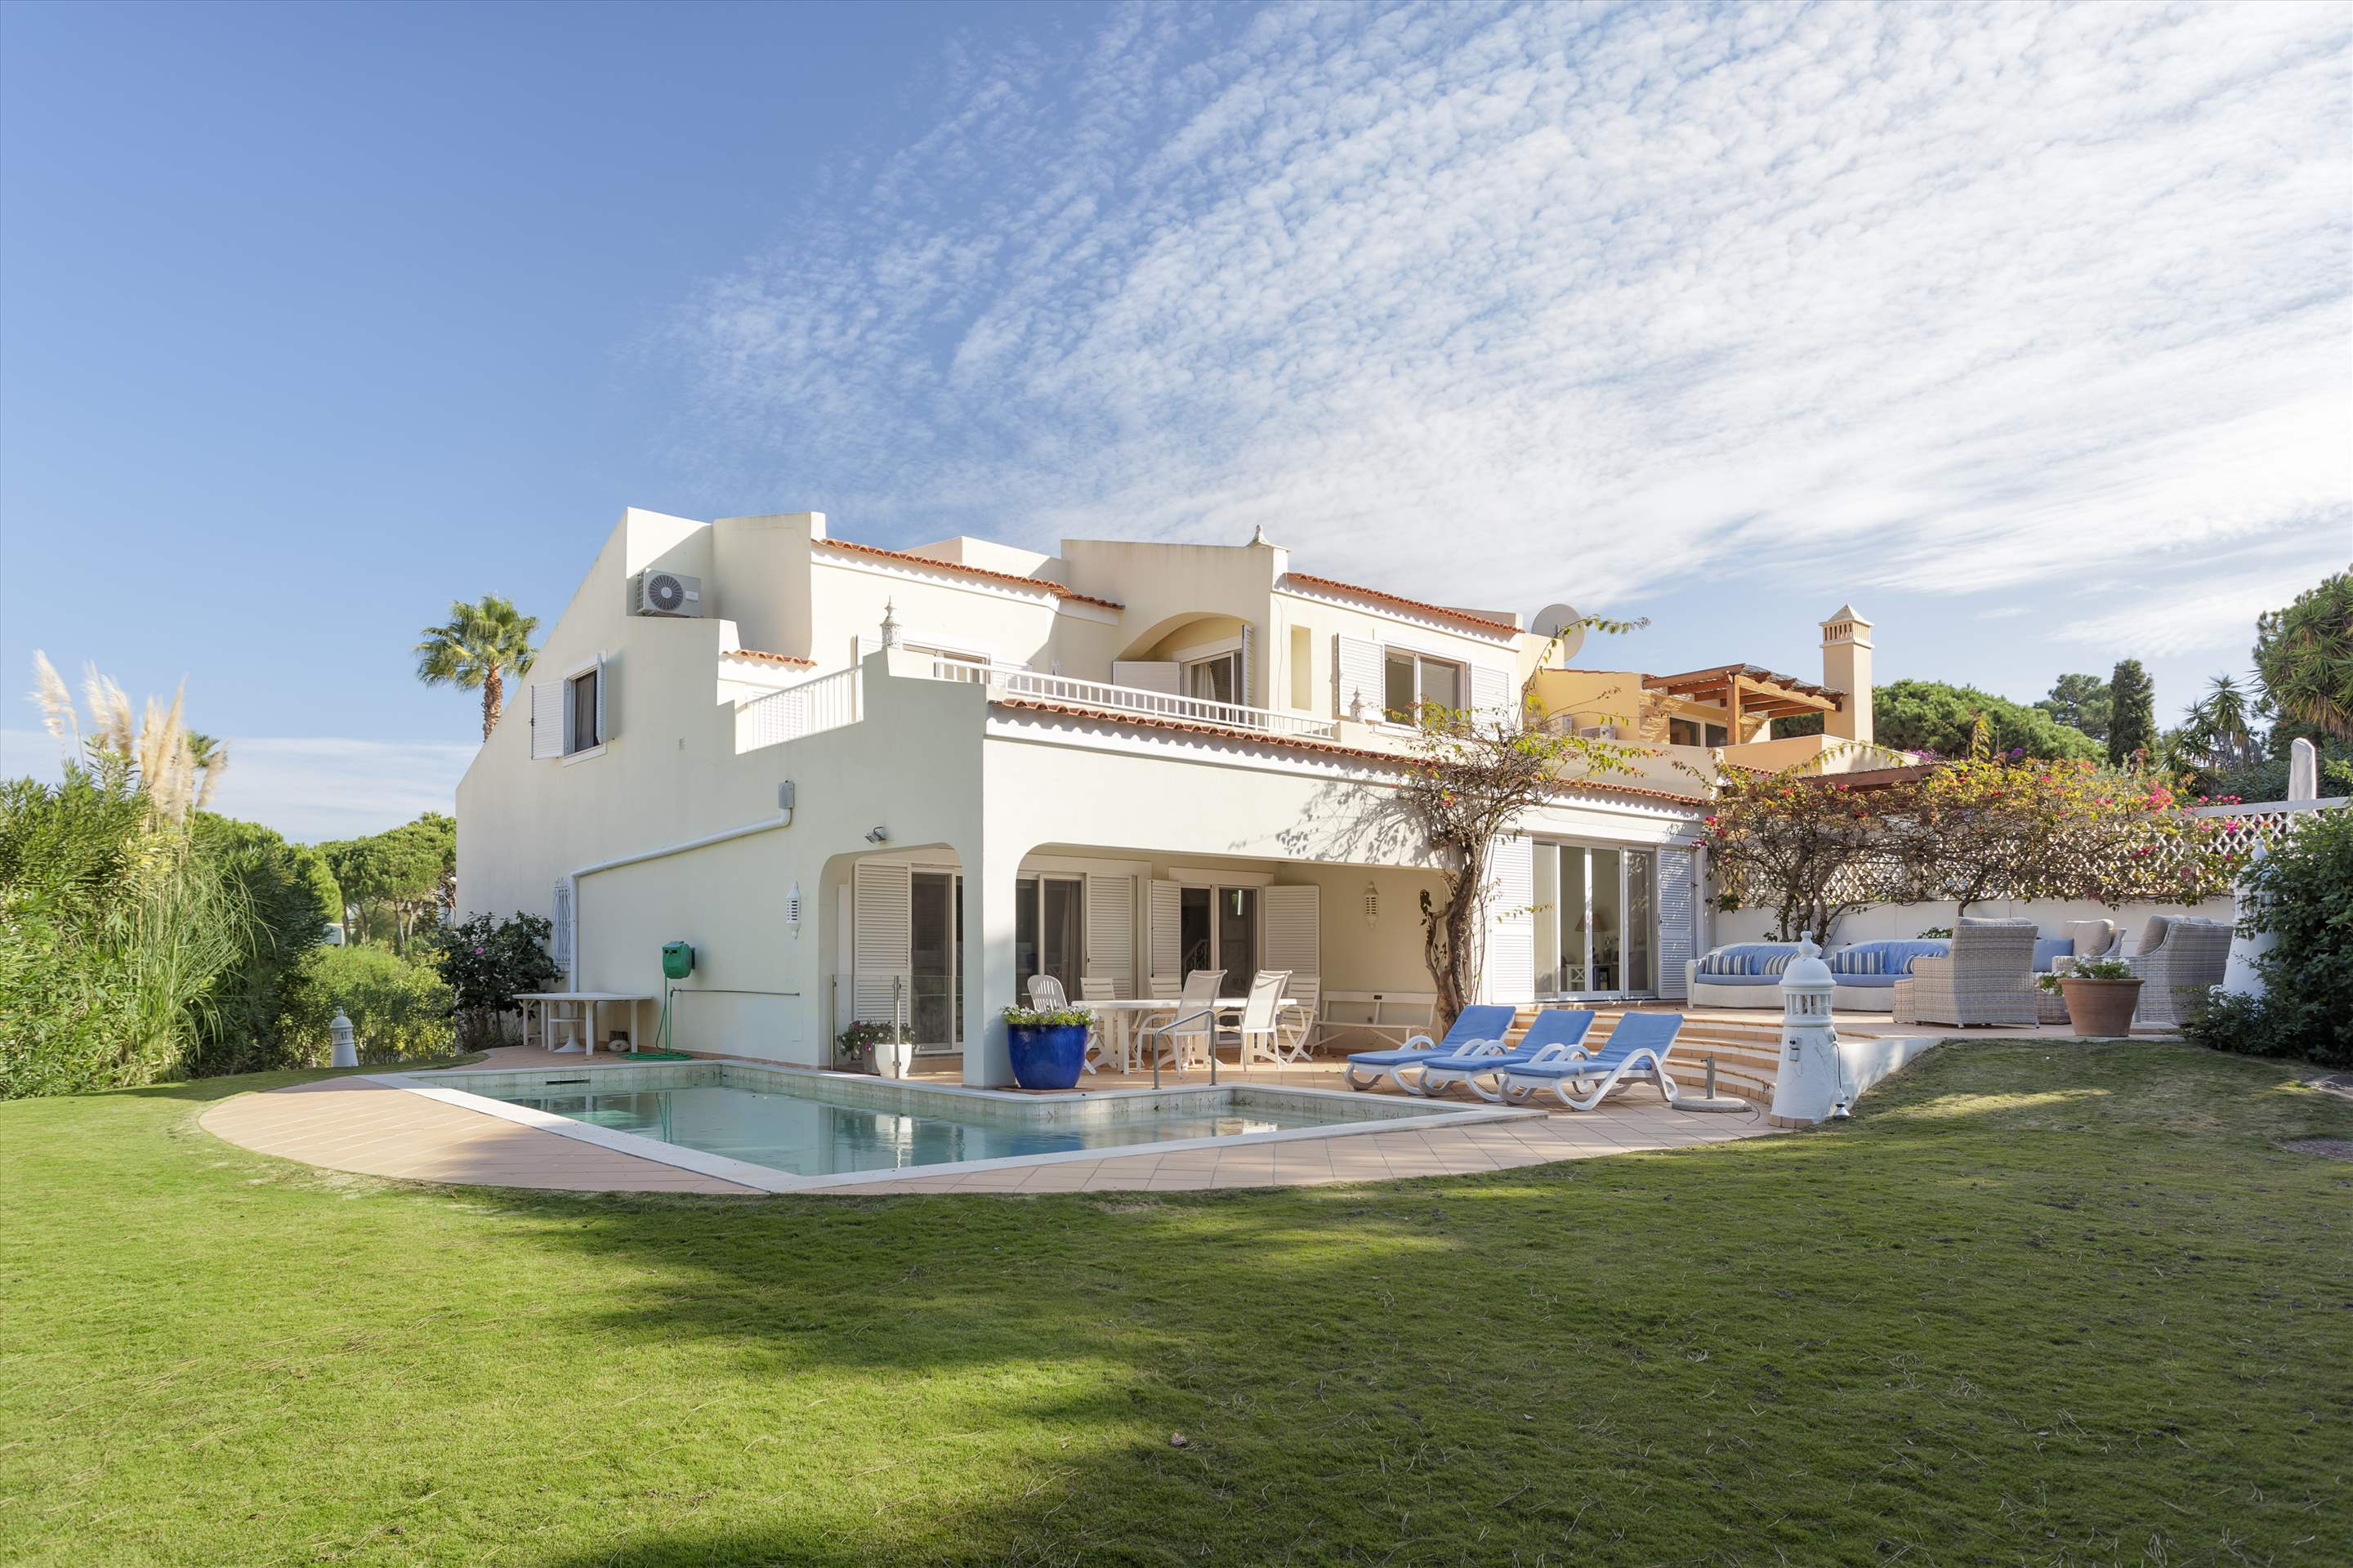 Villa Cascata, 4 Bedroom, 4 bedroom villa in Vale do Lobo, Algarve Photo #6